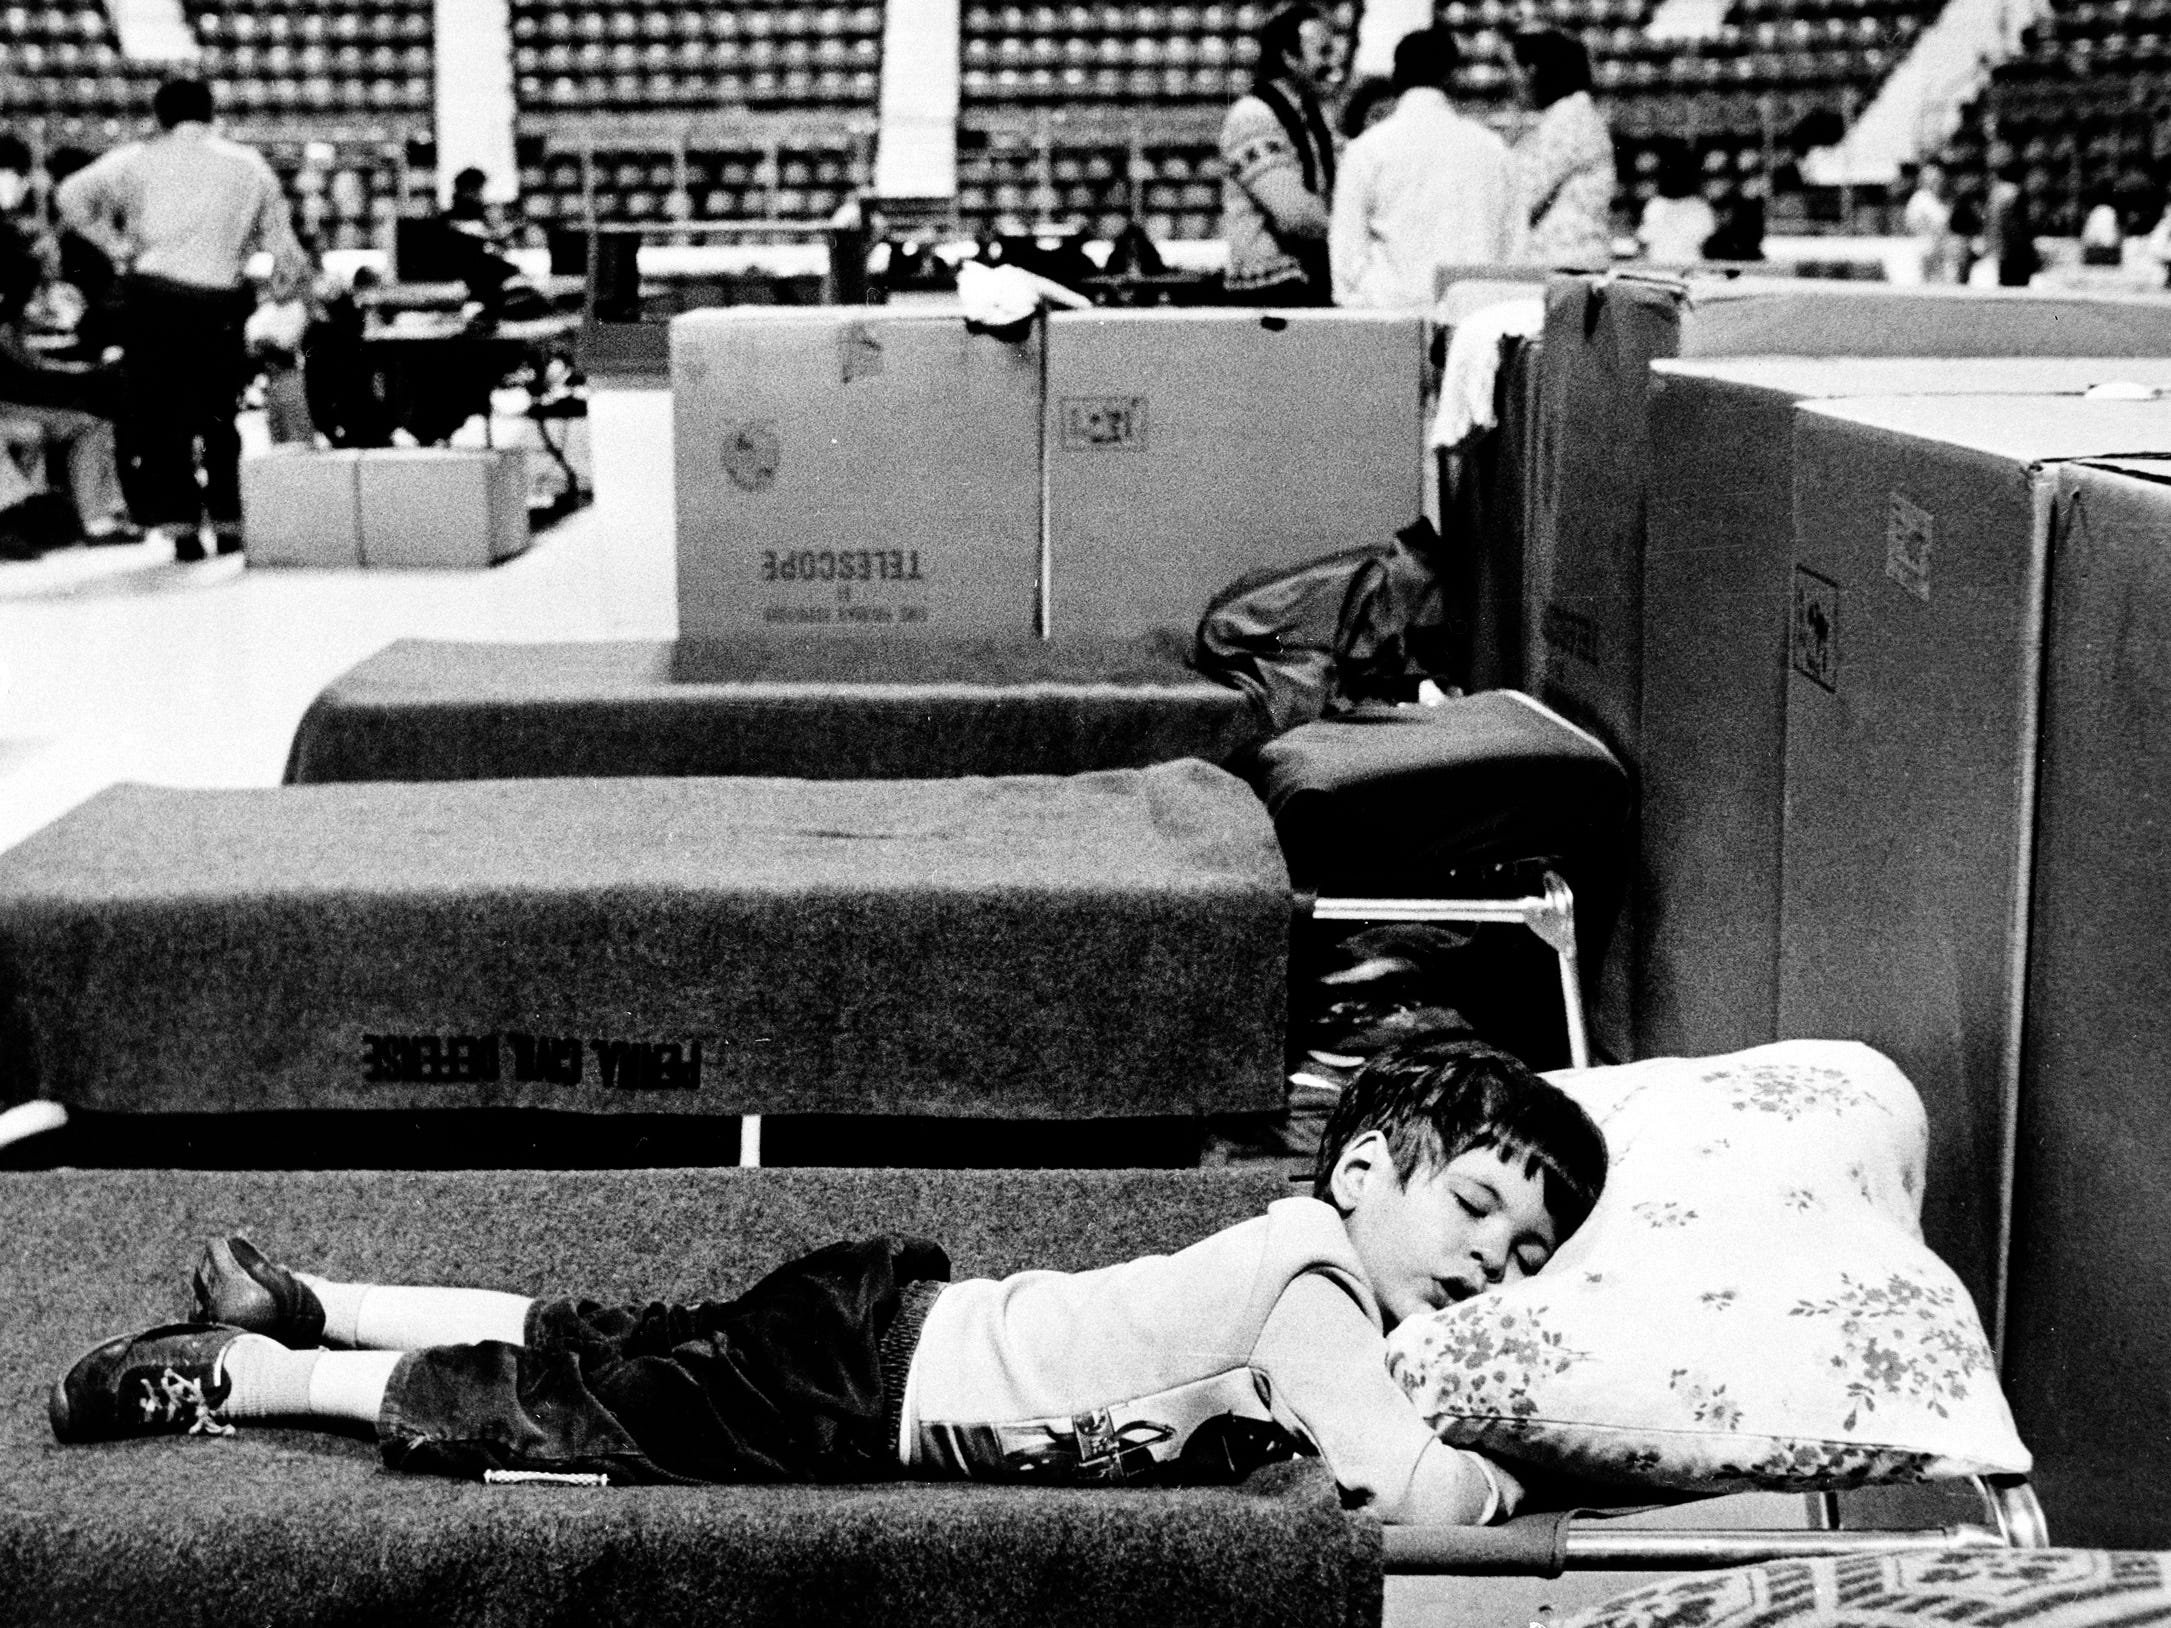 Bobby Phillips of Middletown, age 3 on April 2, 1979, takes a nap at Hersheypark Arena during the Three Mile Island scare. The arena was set up as an evacuation center during the incident.